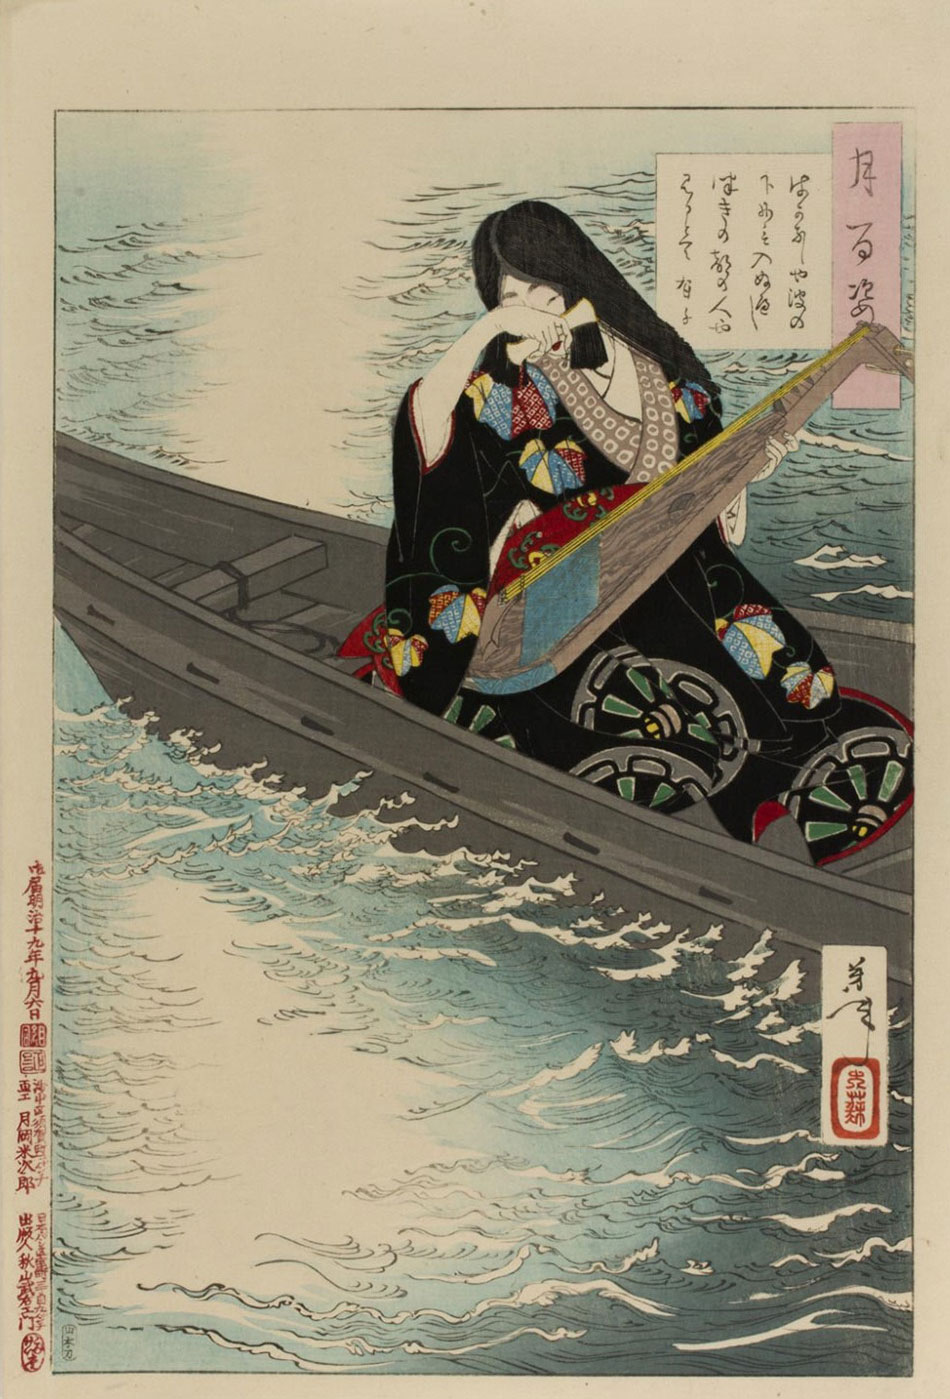 Fujiawara-no-Ariko-Weeping-Over-Her-Lute,-from-the-series-One-Hundred-Aspects-of-the-Moon_by-Tsukioka-Yoshitoshi_Philadelphia-Museum-of-Art_950-W